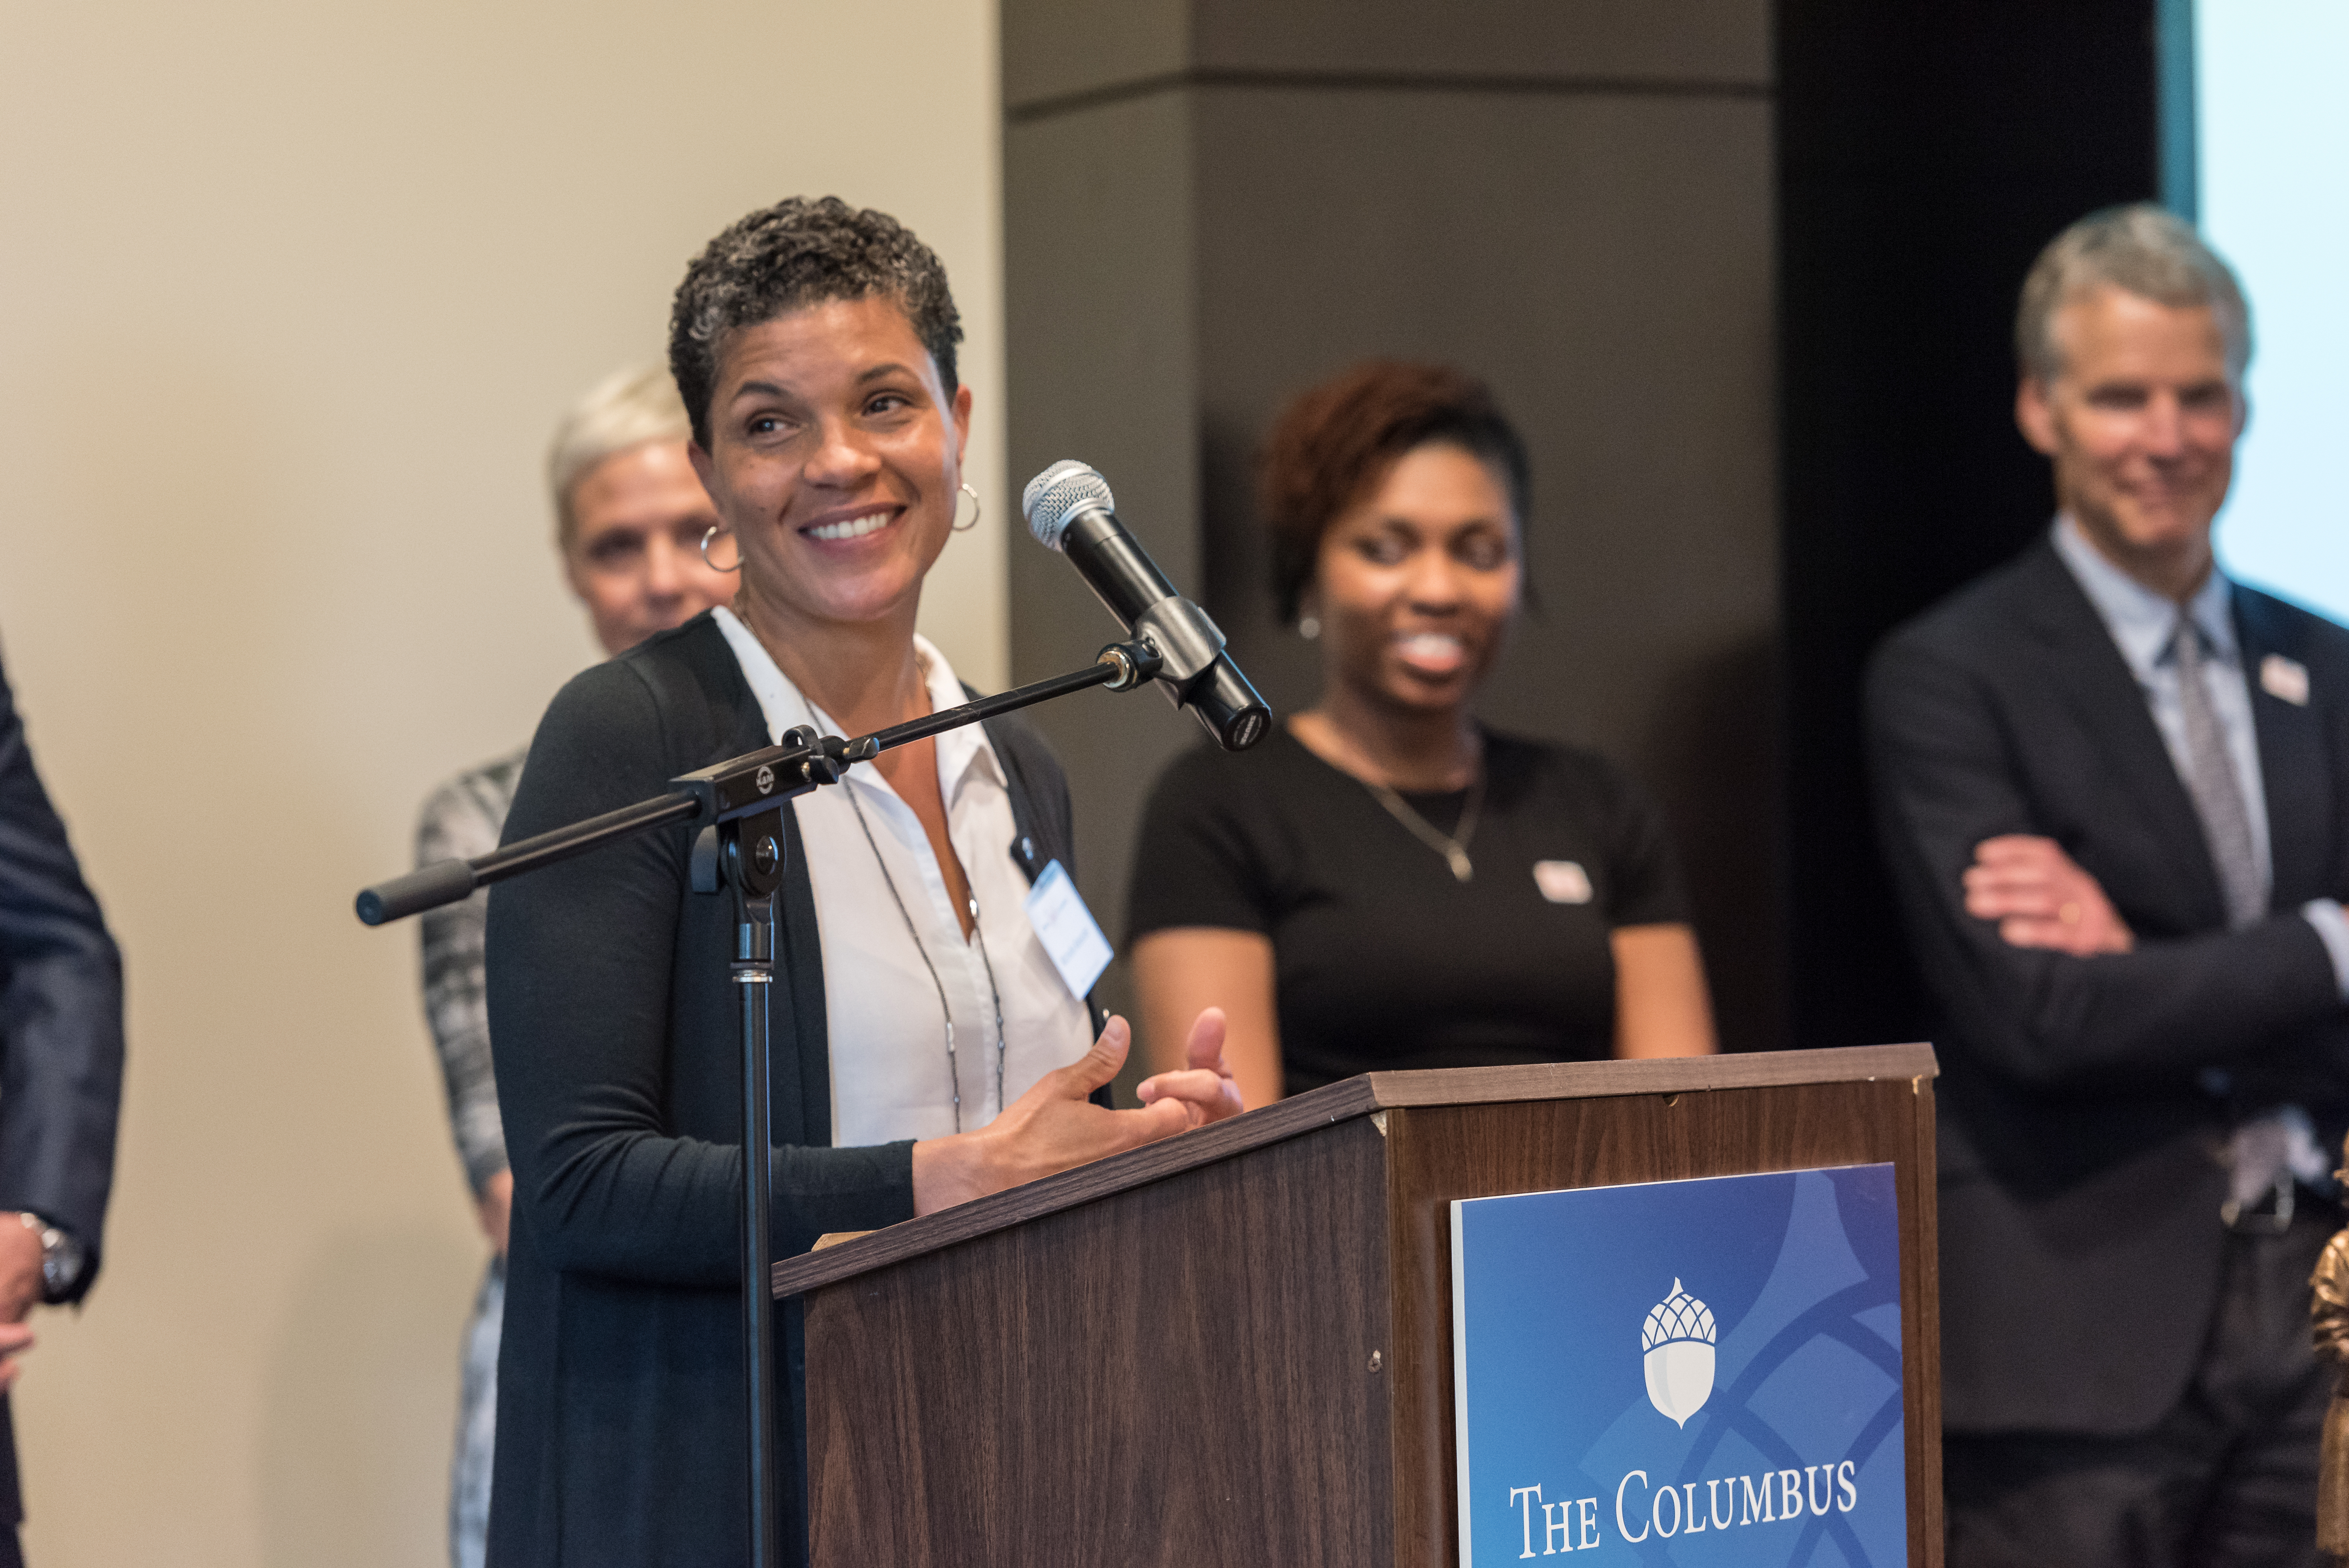 Michelle Alexander, legal scholar, advocate, civil rights attorney, and author of the groundbreaking book, The New Jim Crow: Mass Incarceration in the Age of Colorblindness, the 2017 winner of The Spirit of Columbus Award.